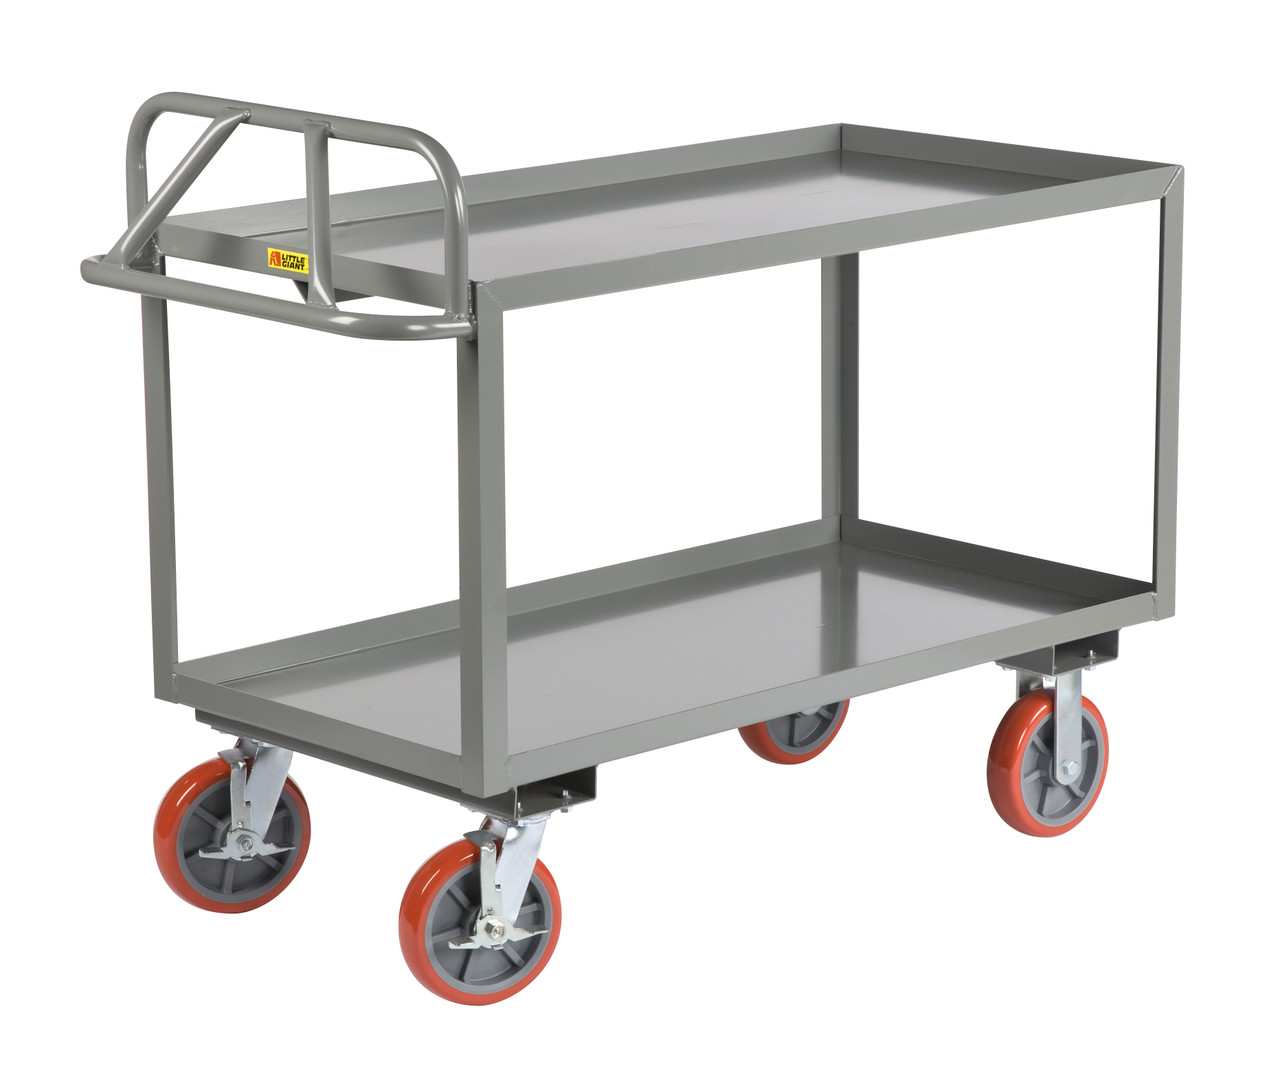 Heavy Duty Ergonomic Shelf Trucks